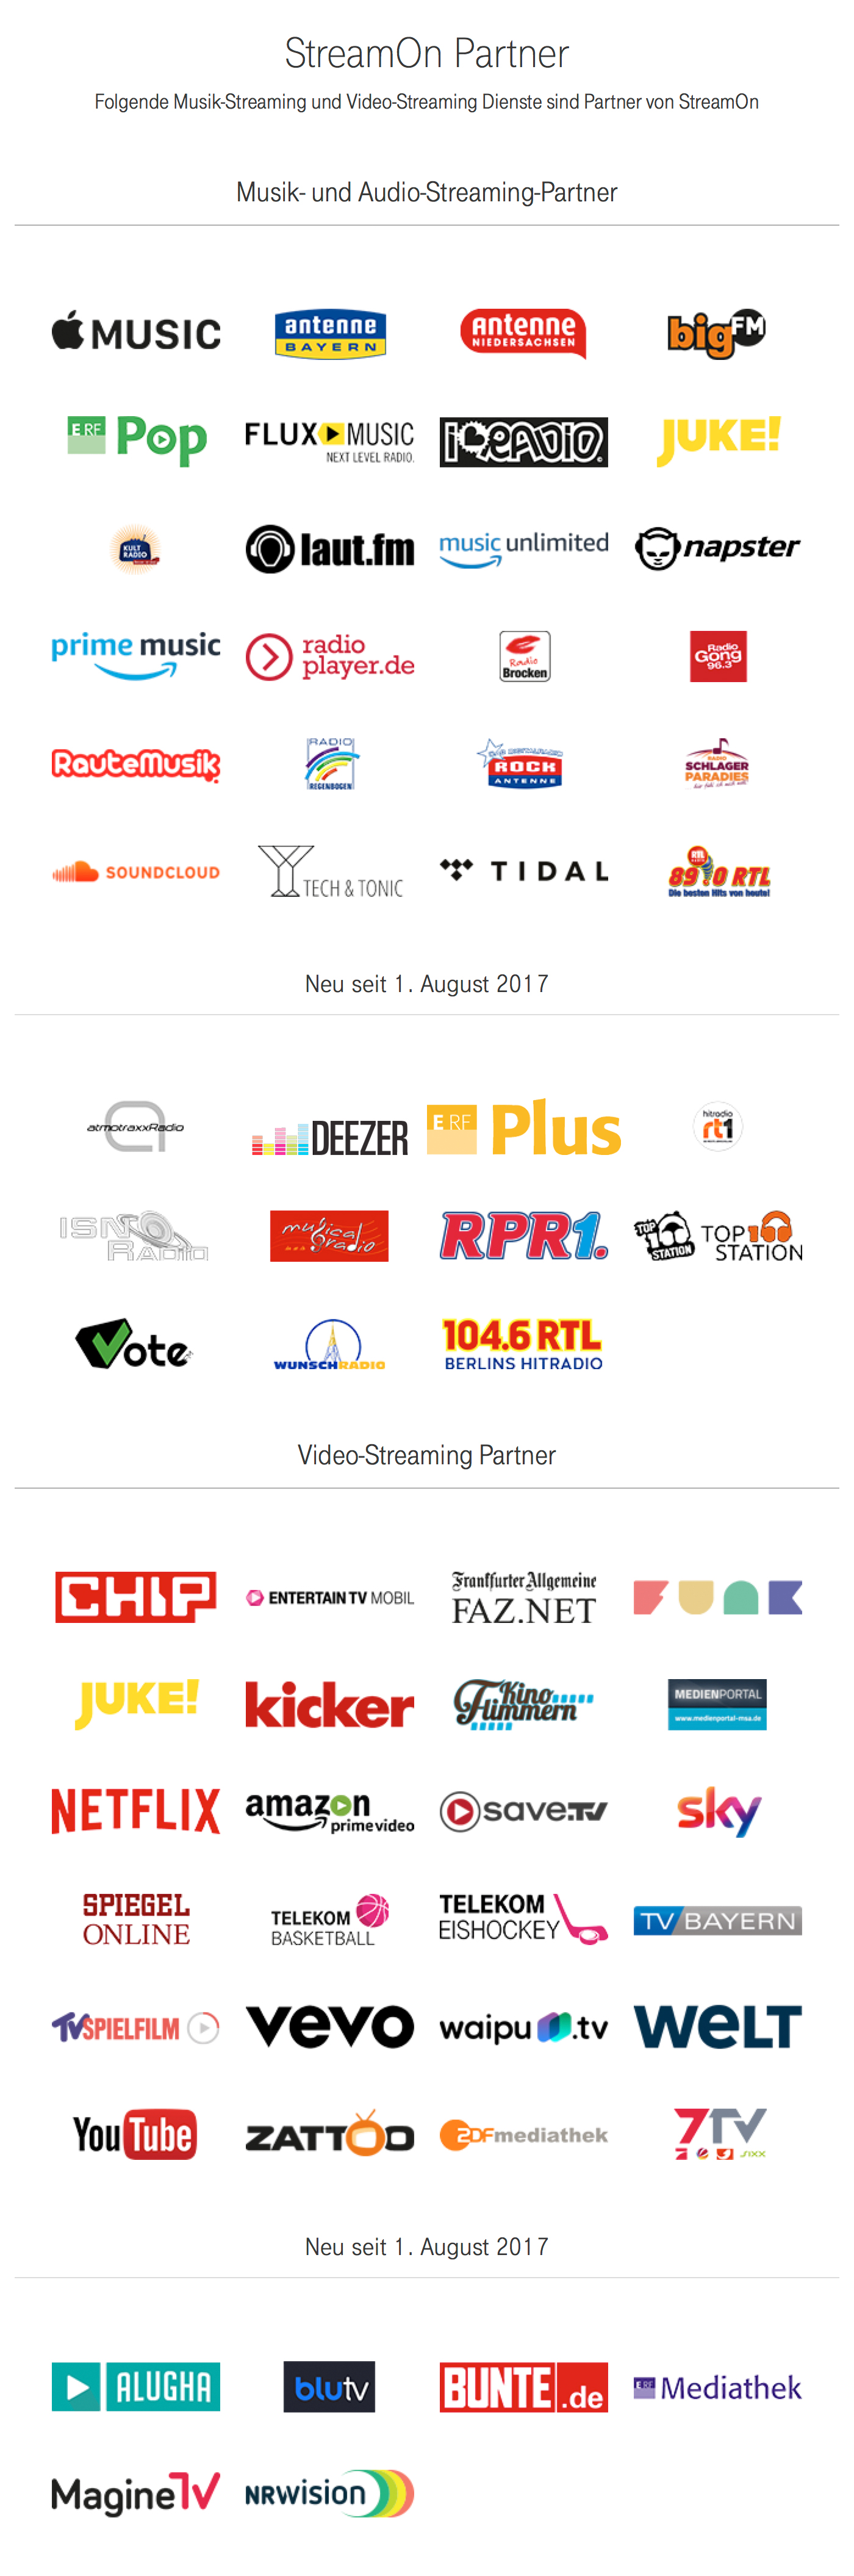 Streamon Partner August 2017